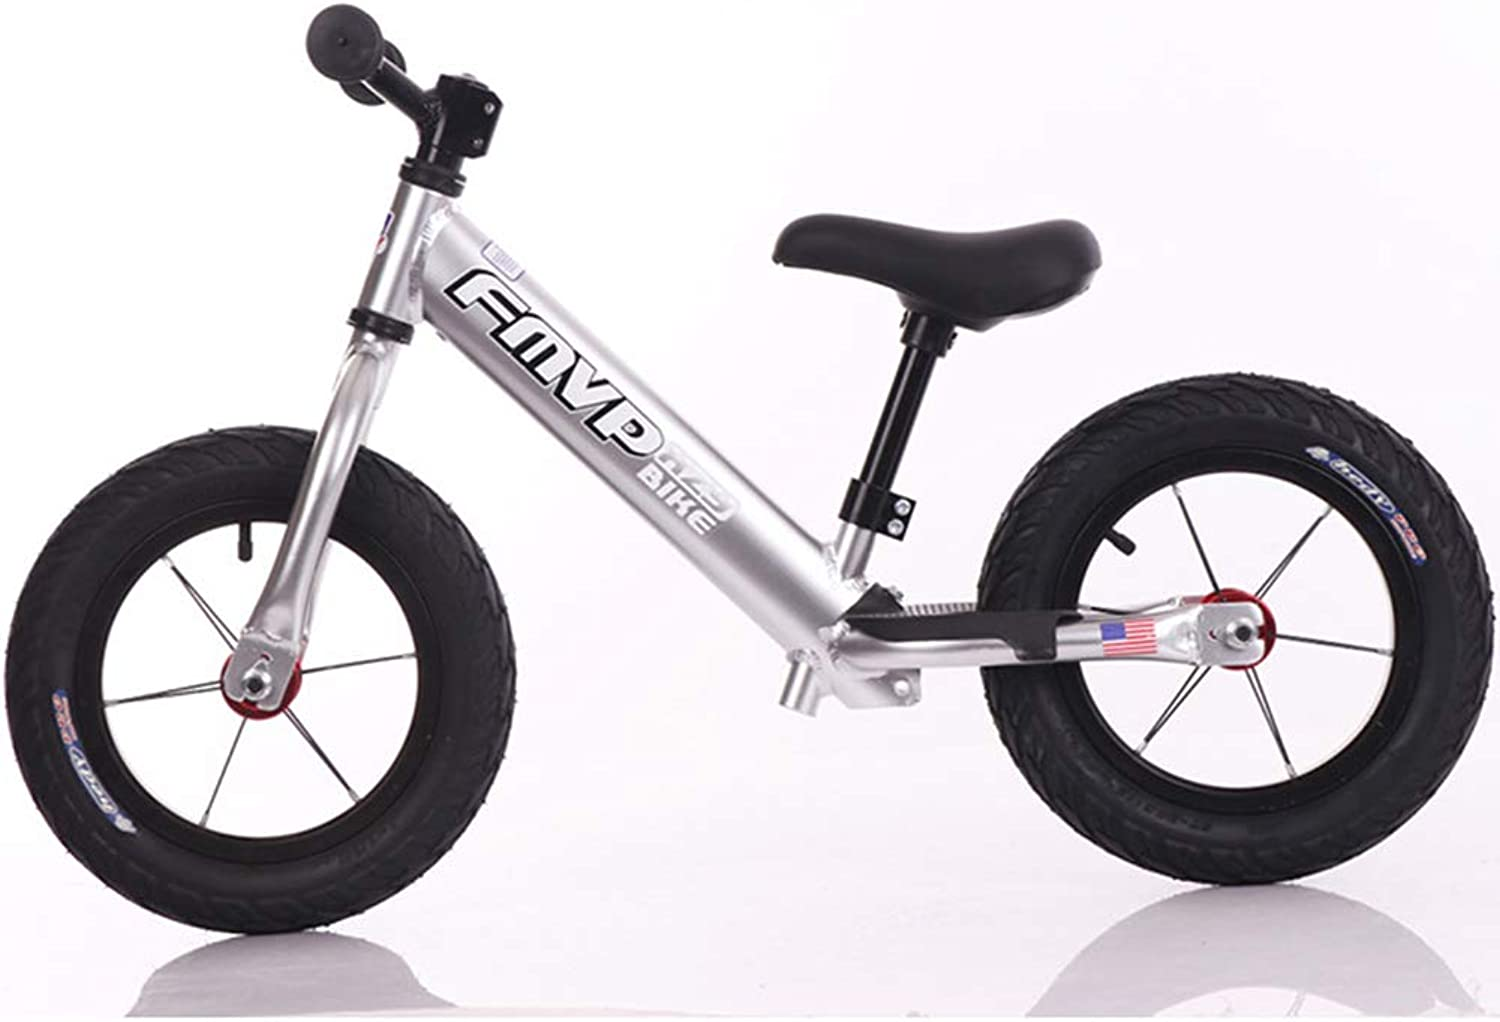 Balance Bike, with Airless Rubberskin Tires No Pedal Sport Training Bicycle Adjustable Handlebar and Seat Lightweight